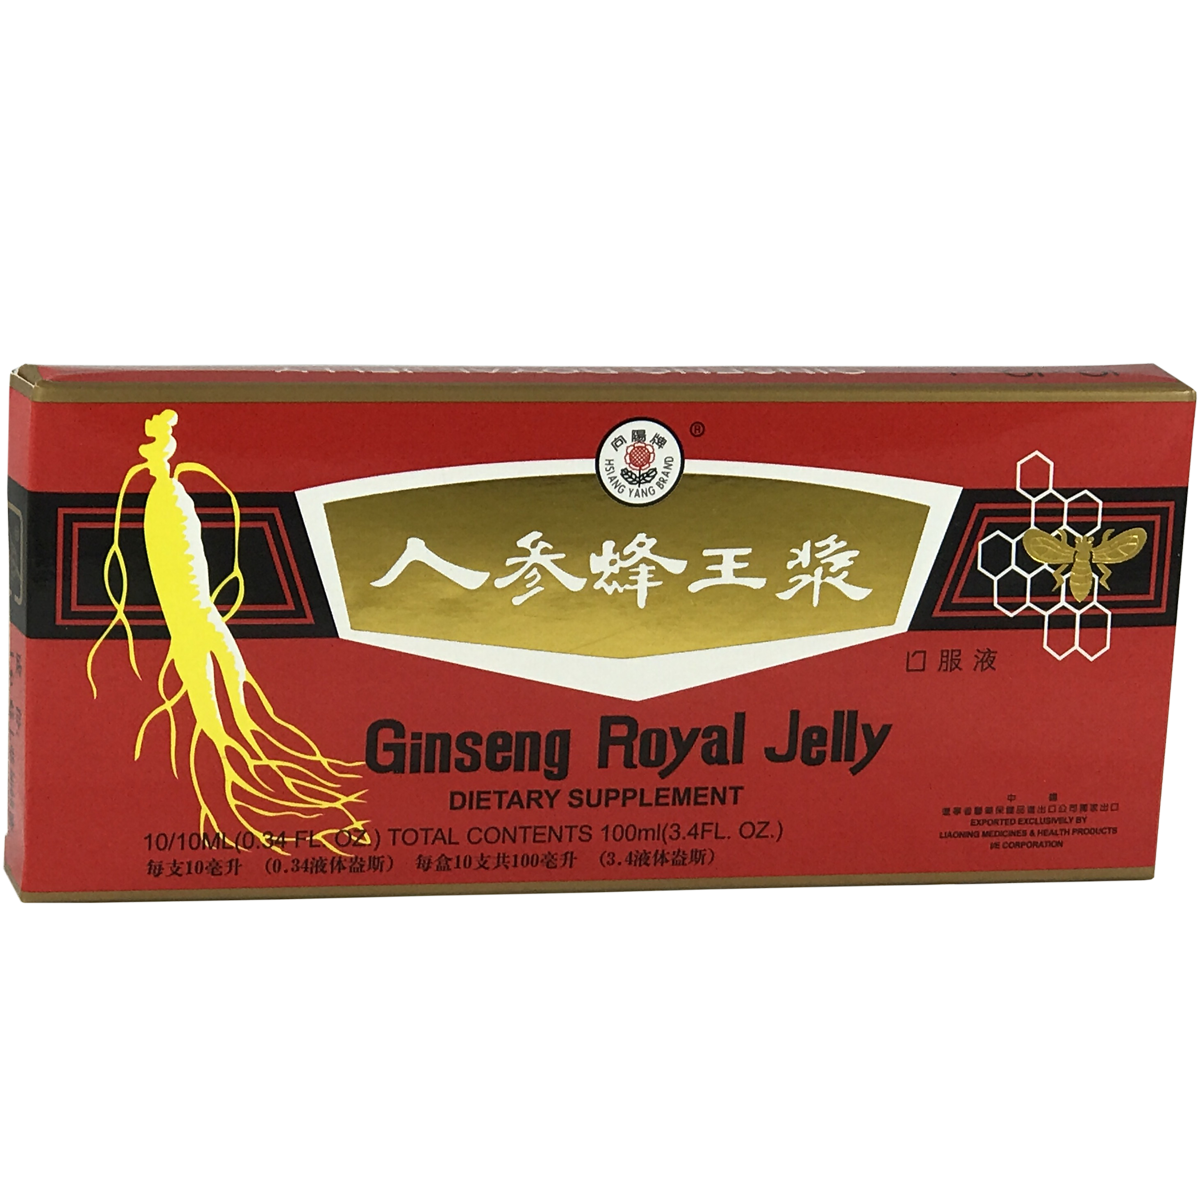 Ginseng Royal Jelly Image